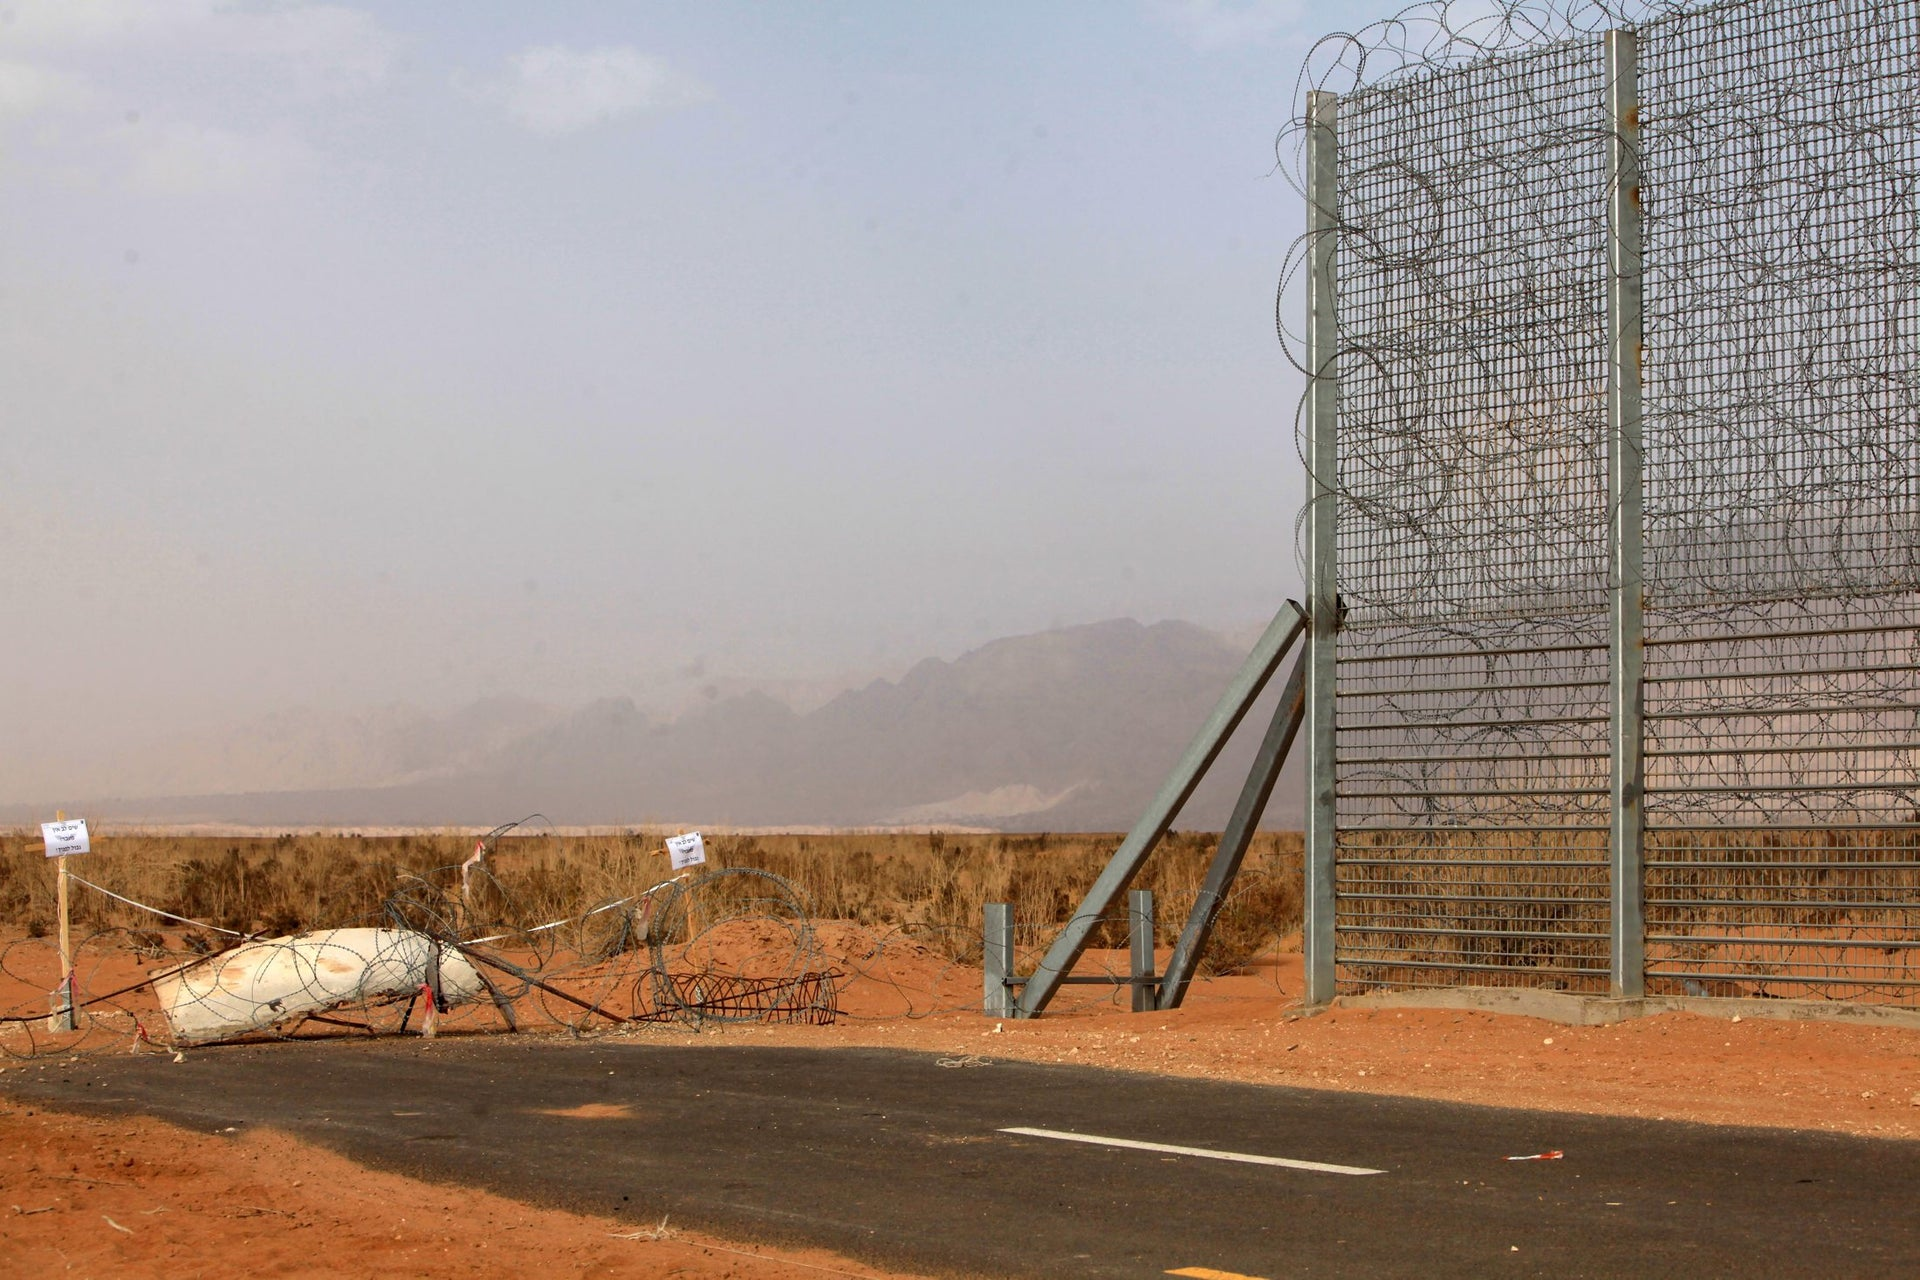 Where the great border wall ends, and the roles of barbed wire begin.